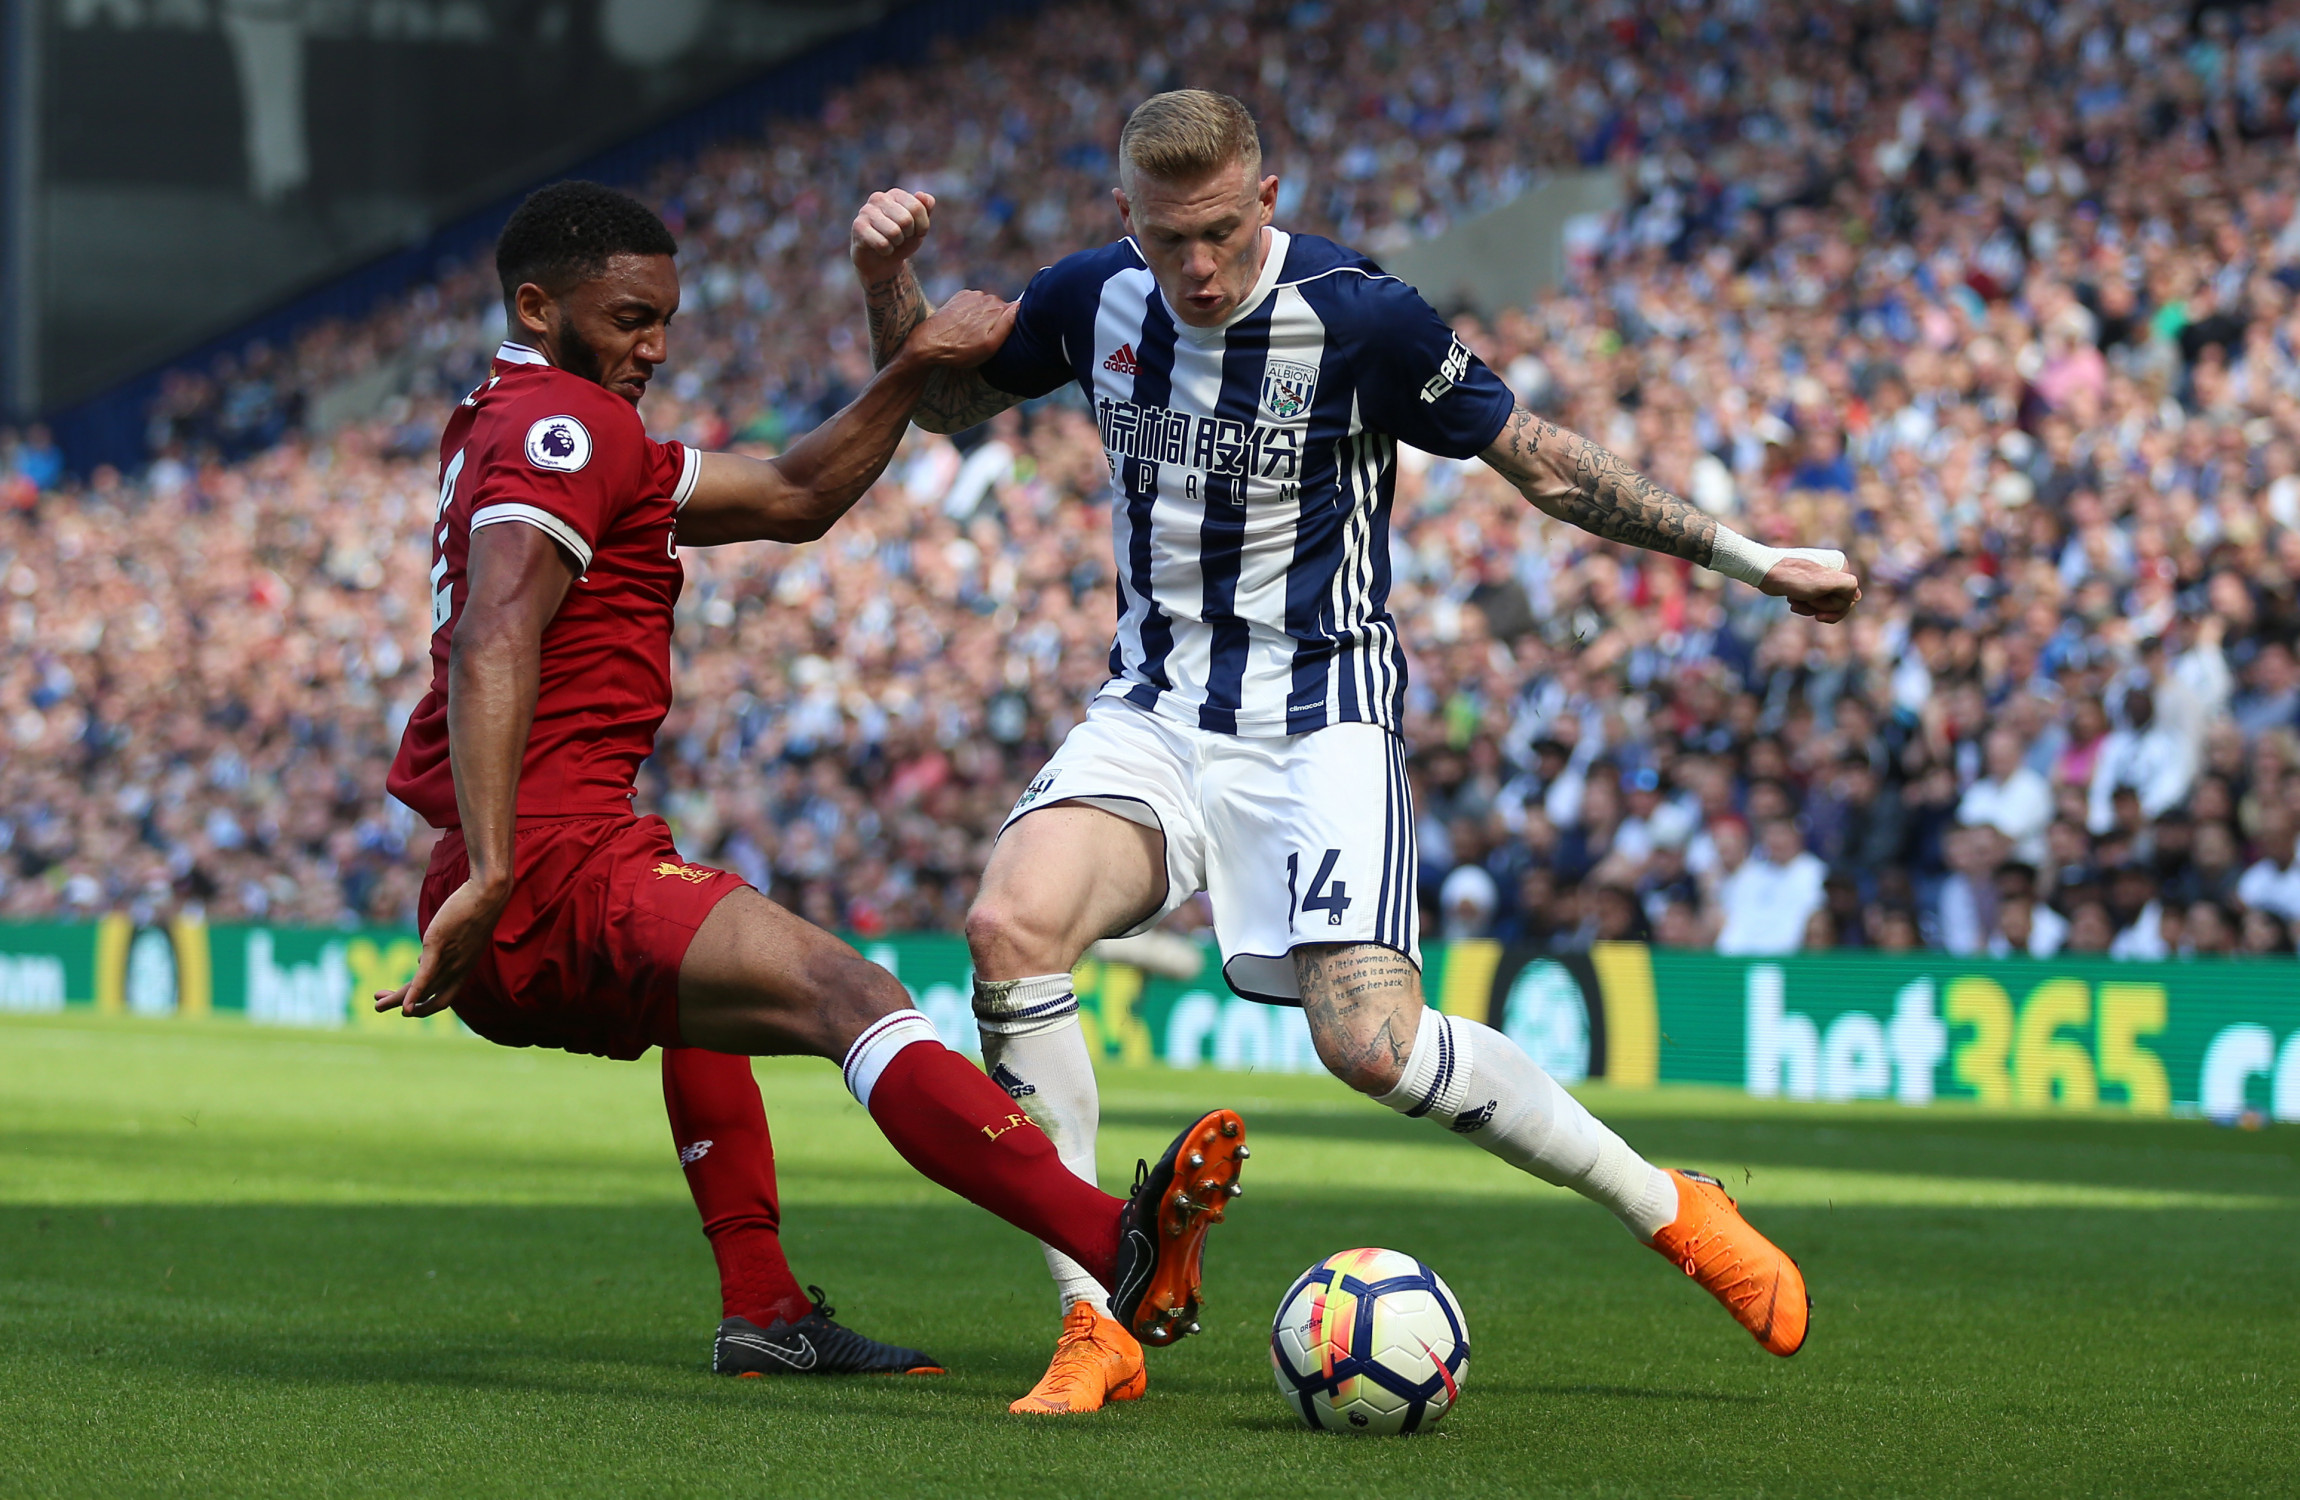 Premier League Preview: West Brom vs. Tottenham Hotspur